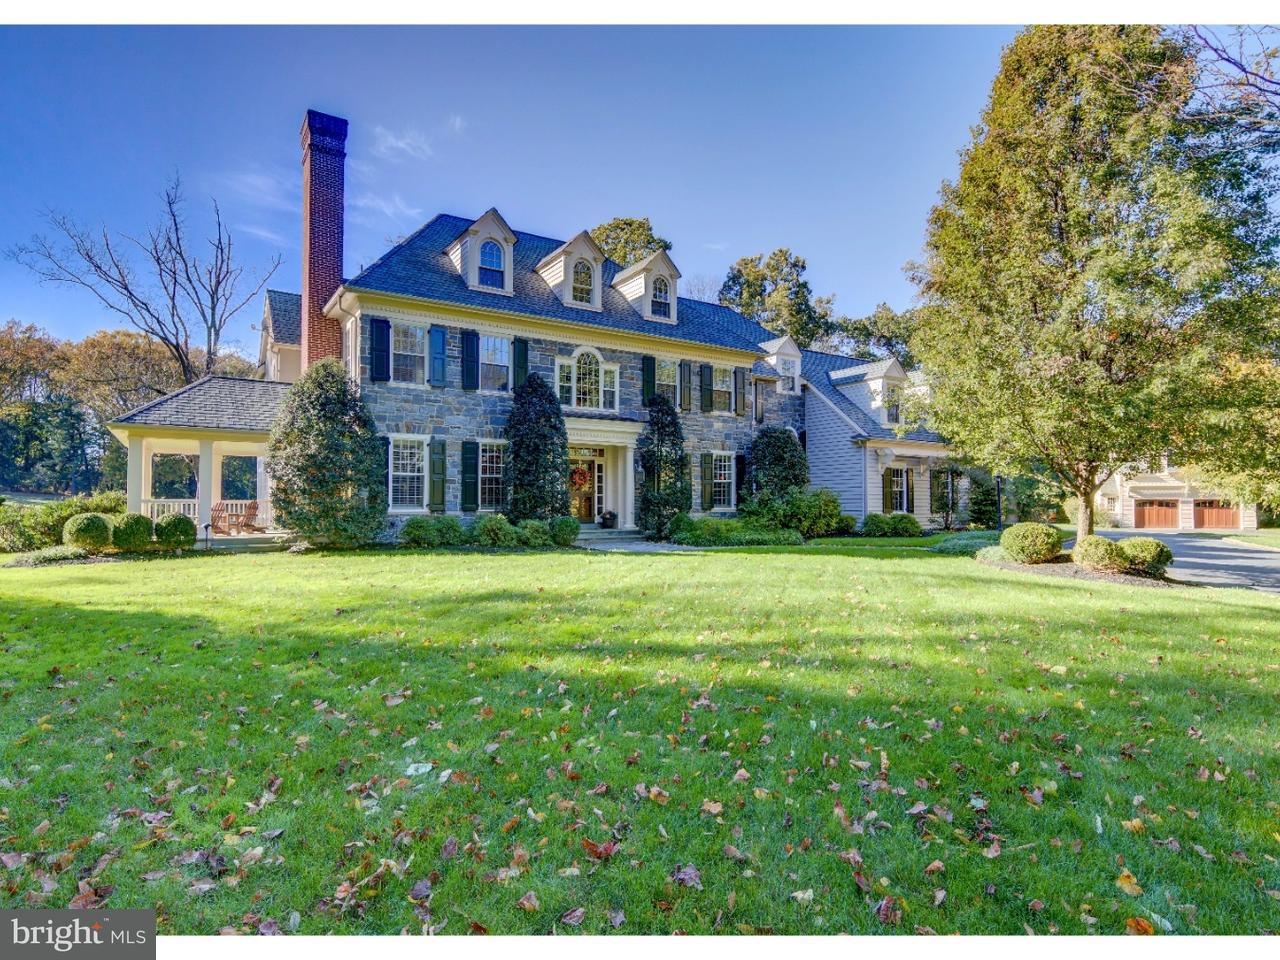 Single Family Home for Sale at 415 TIMBER Lane Newtown Square, Pennsylvania 19073 United States